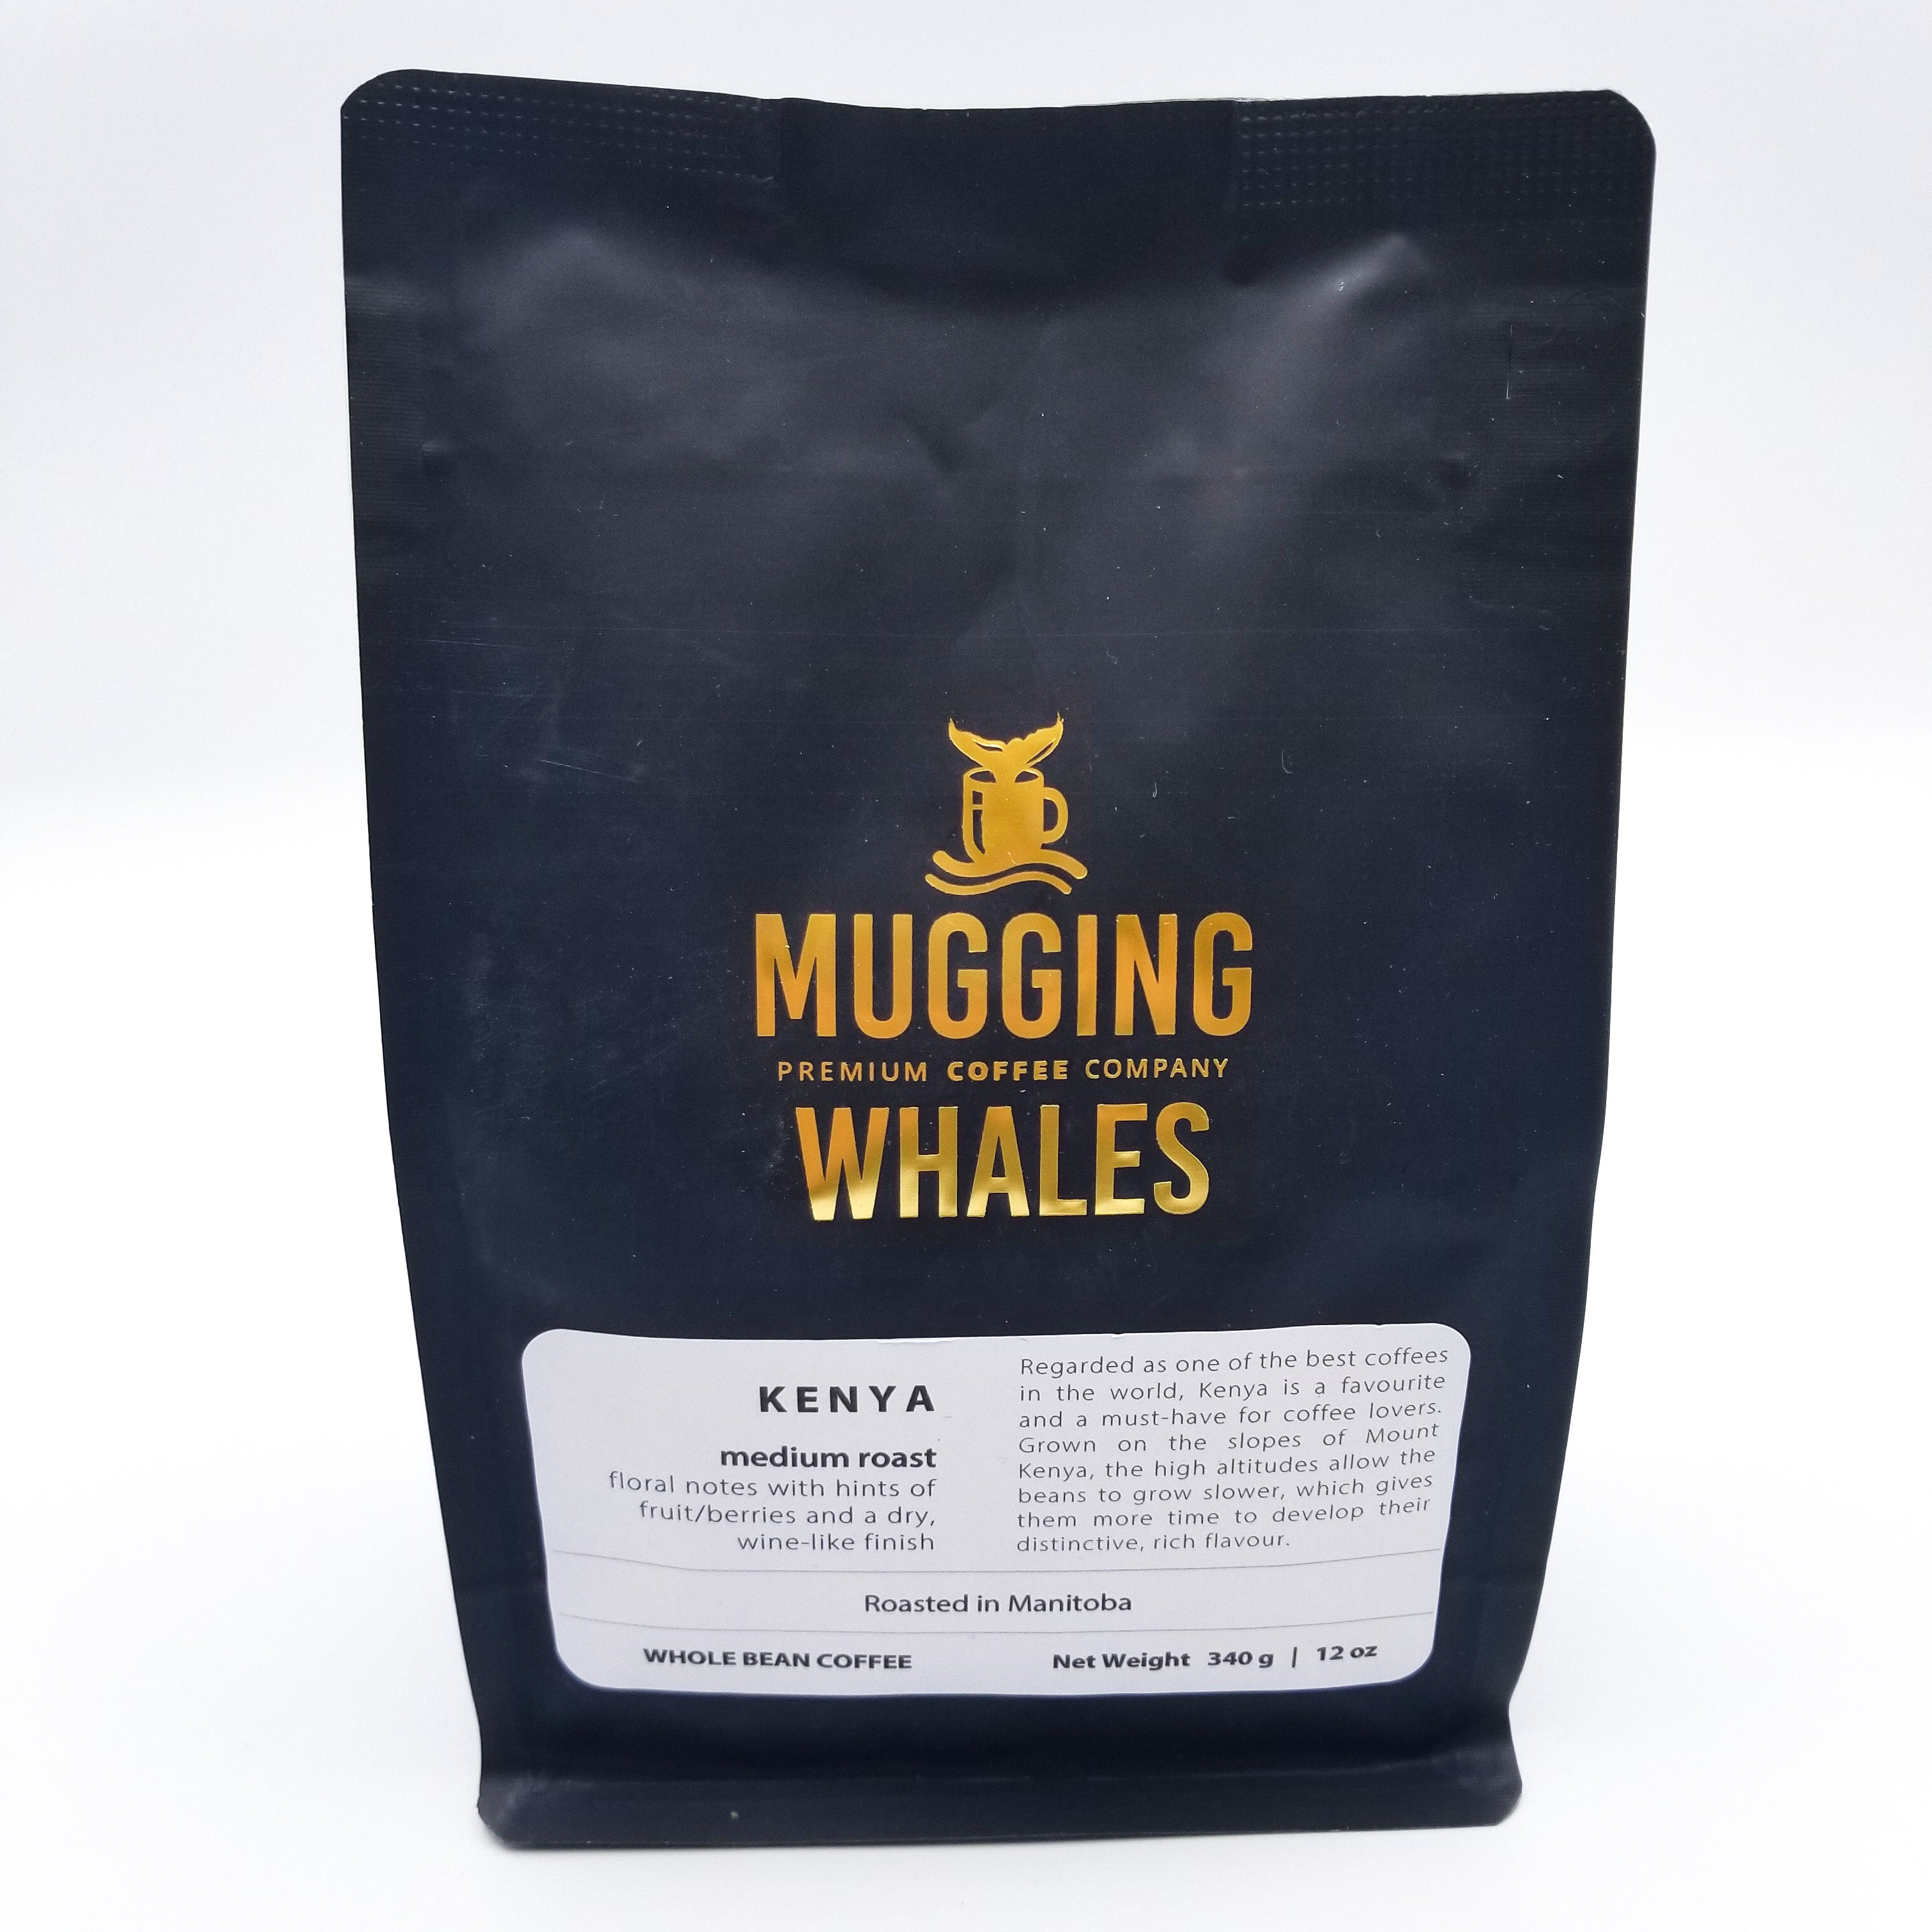 Kenya Medium Roast Coffee 340g by Mugging Whales Premium Coffee